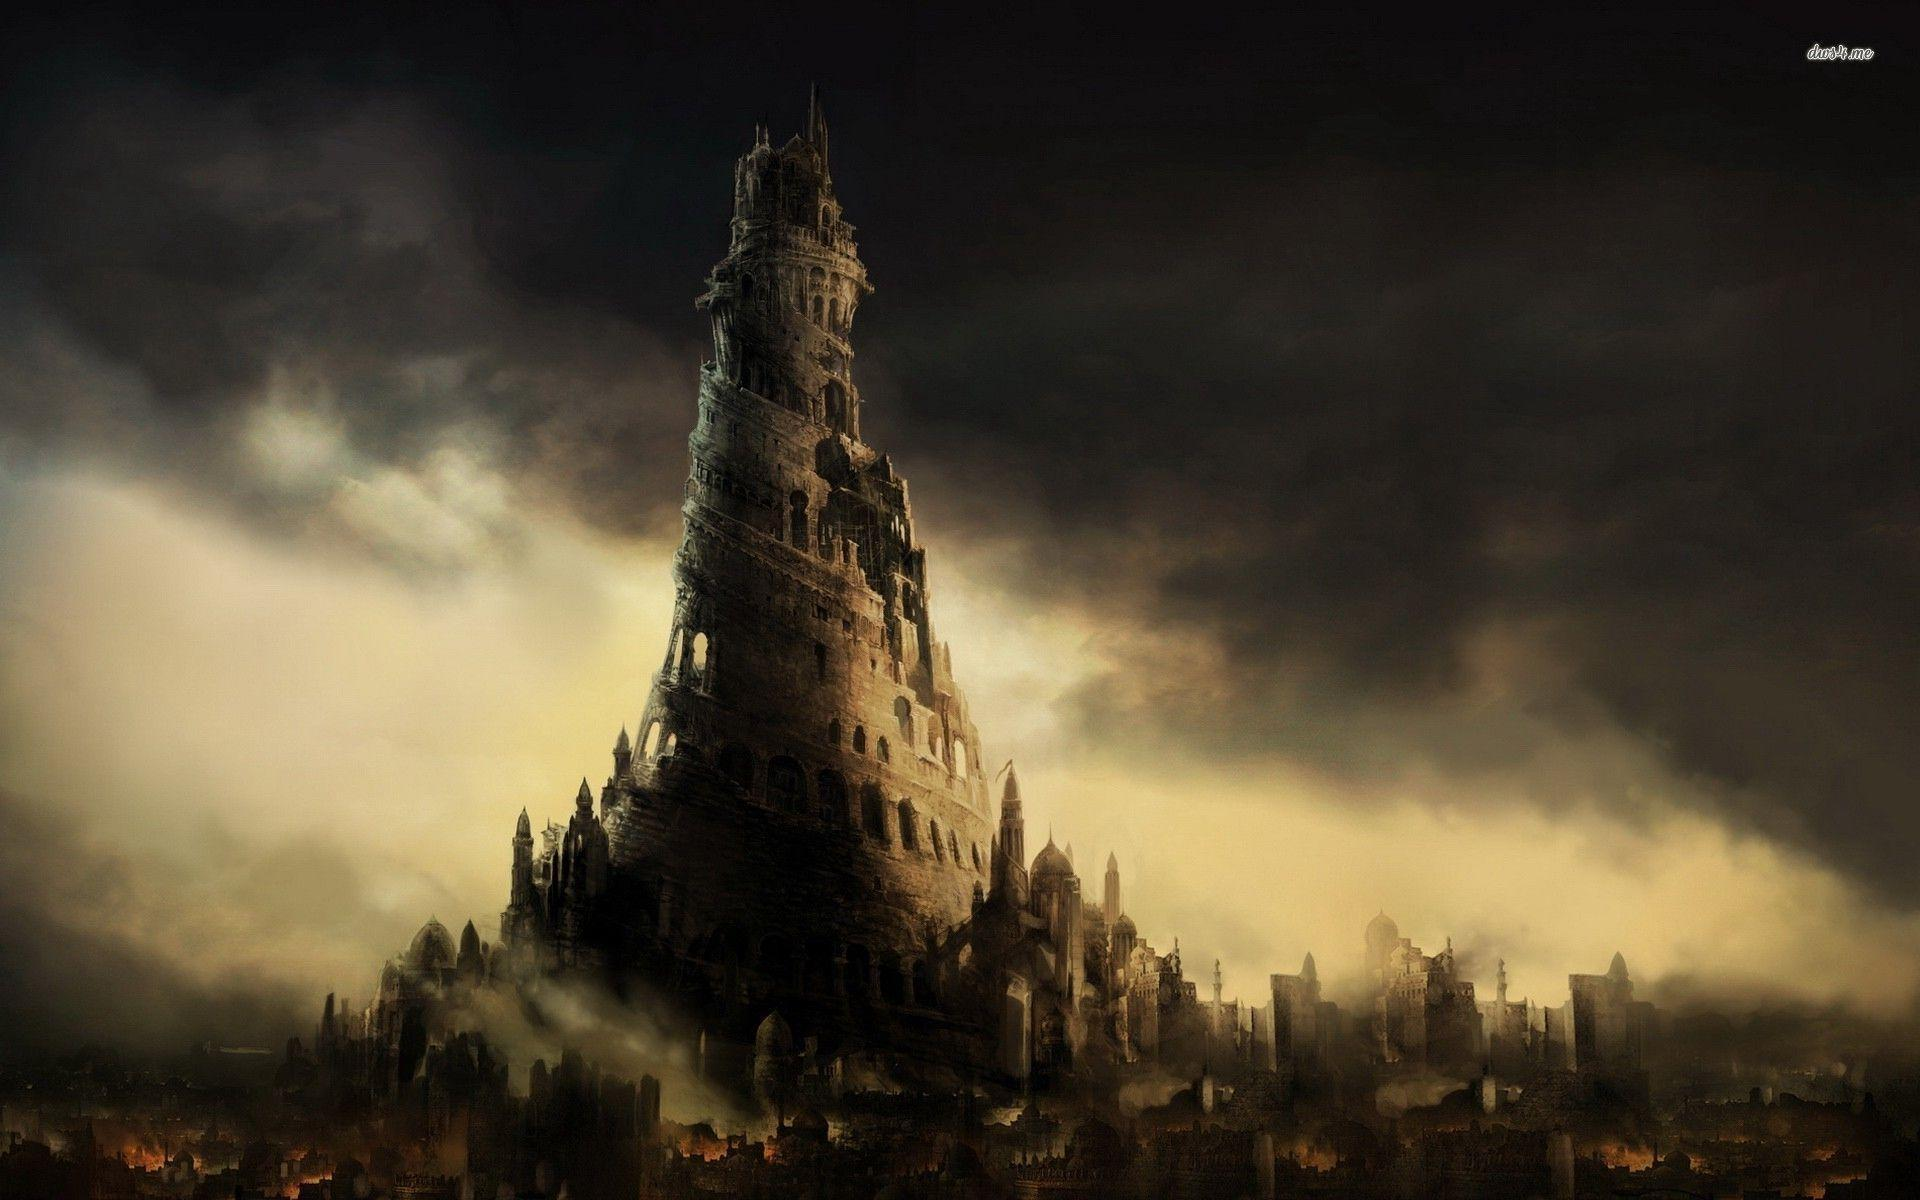 Geography Hd Wallpaper Prince Of Persia Movie Wallpapers Wallpaper Cave